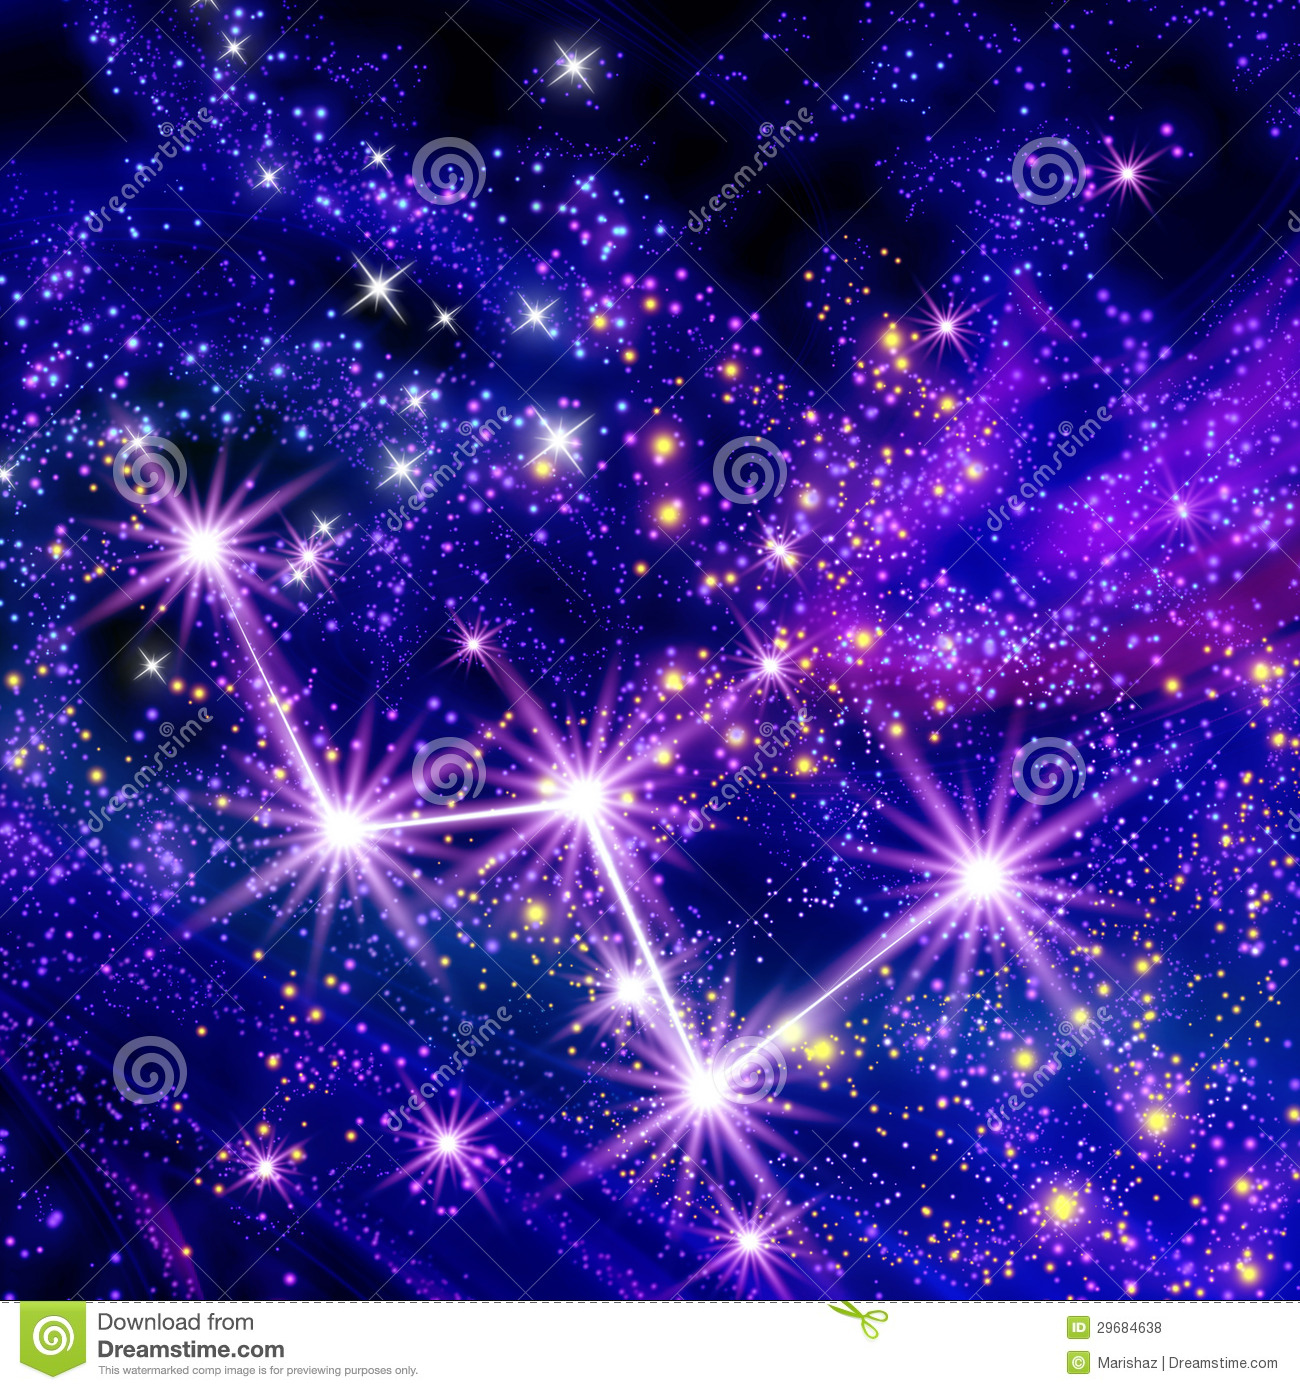 Constellation Cassiopeia Royalty Free Stock Photos